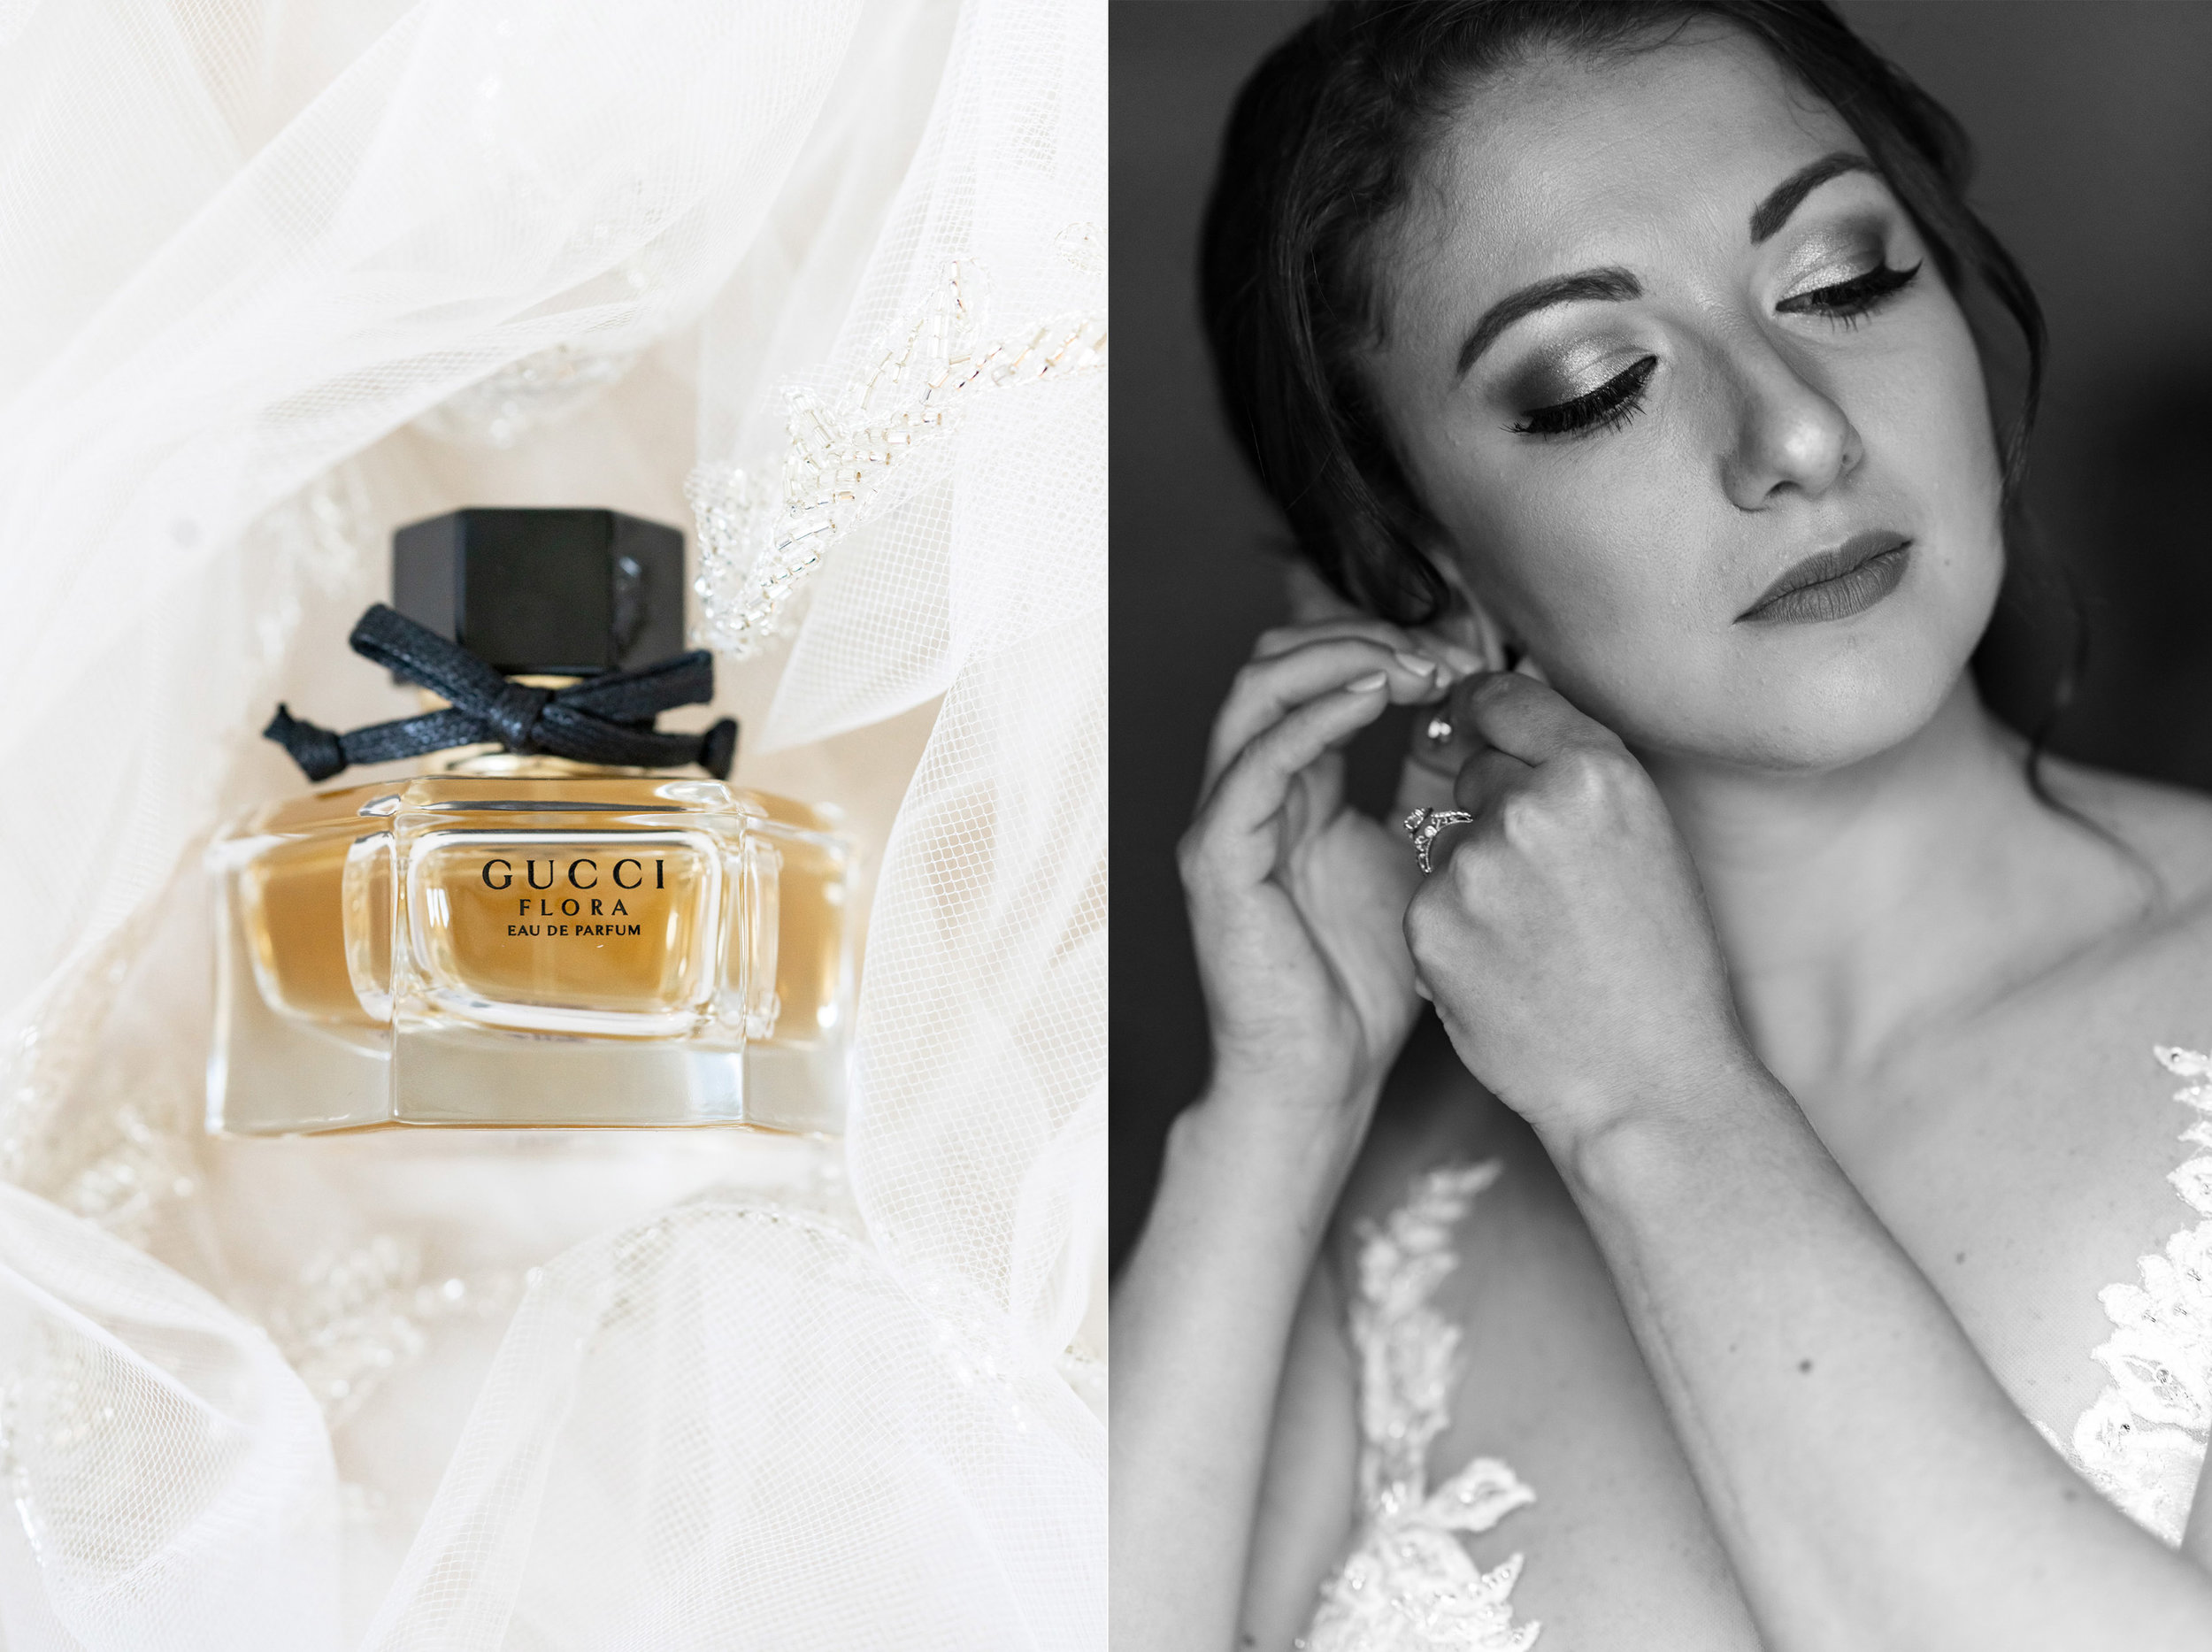 Gucci floral perfume in veil and bride putting on her earrings at Glenview Mansion